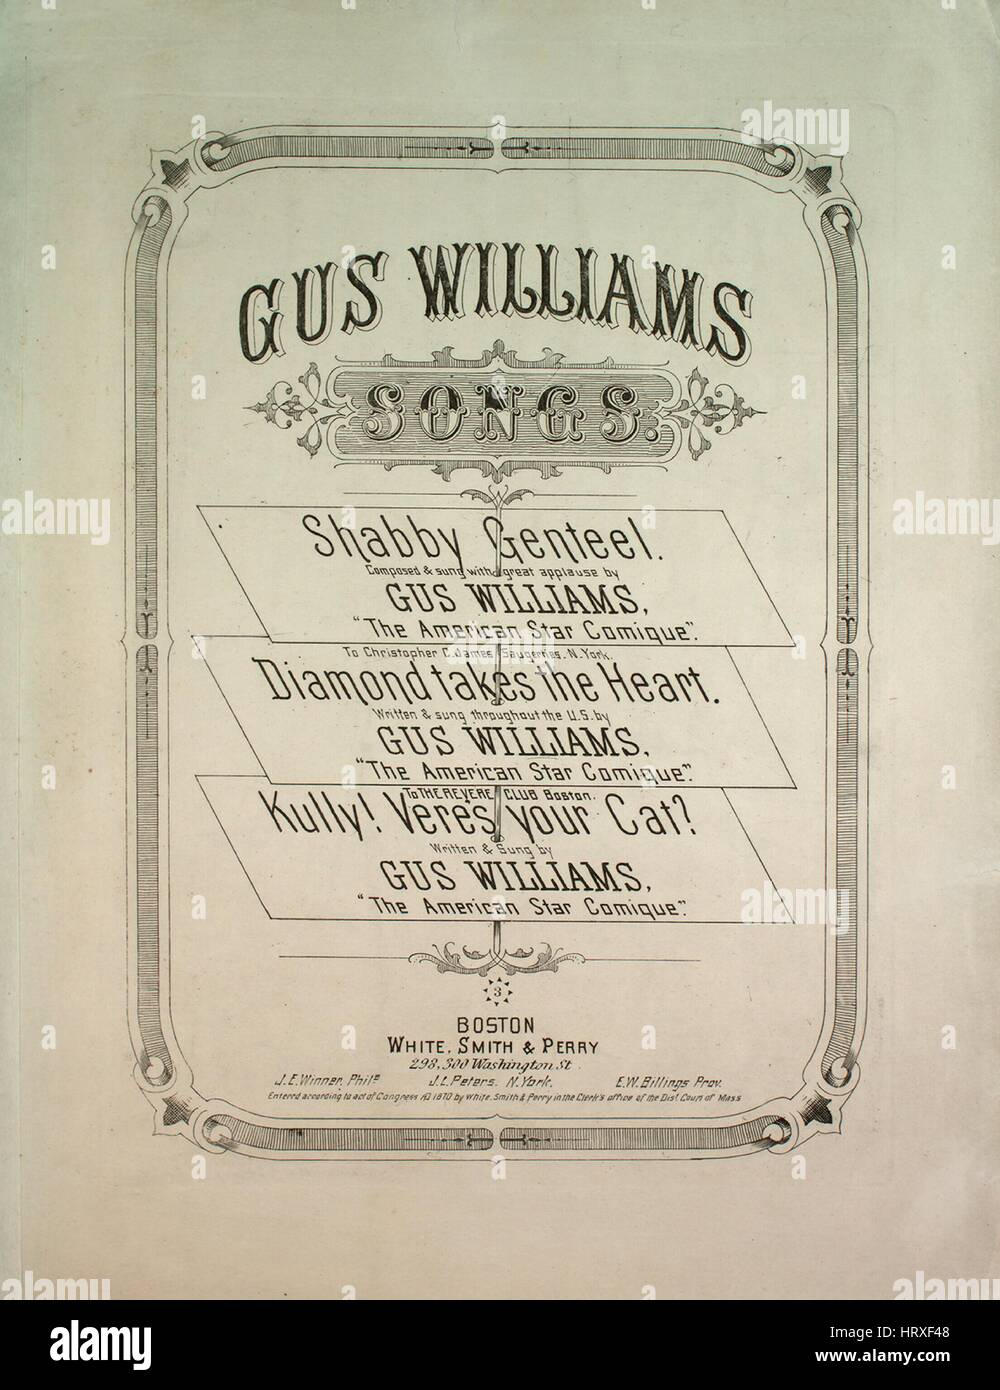 Sheet music cover image of the song Gus Williams Songs Shabby